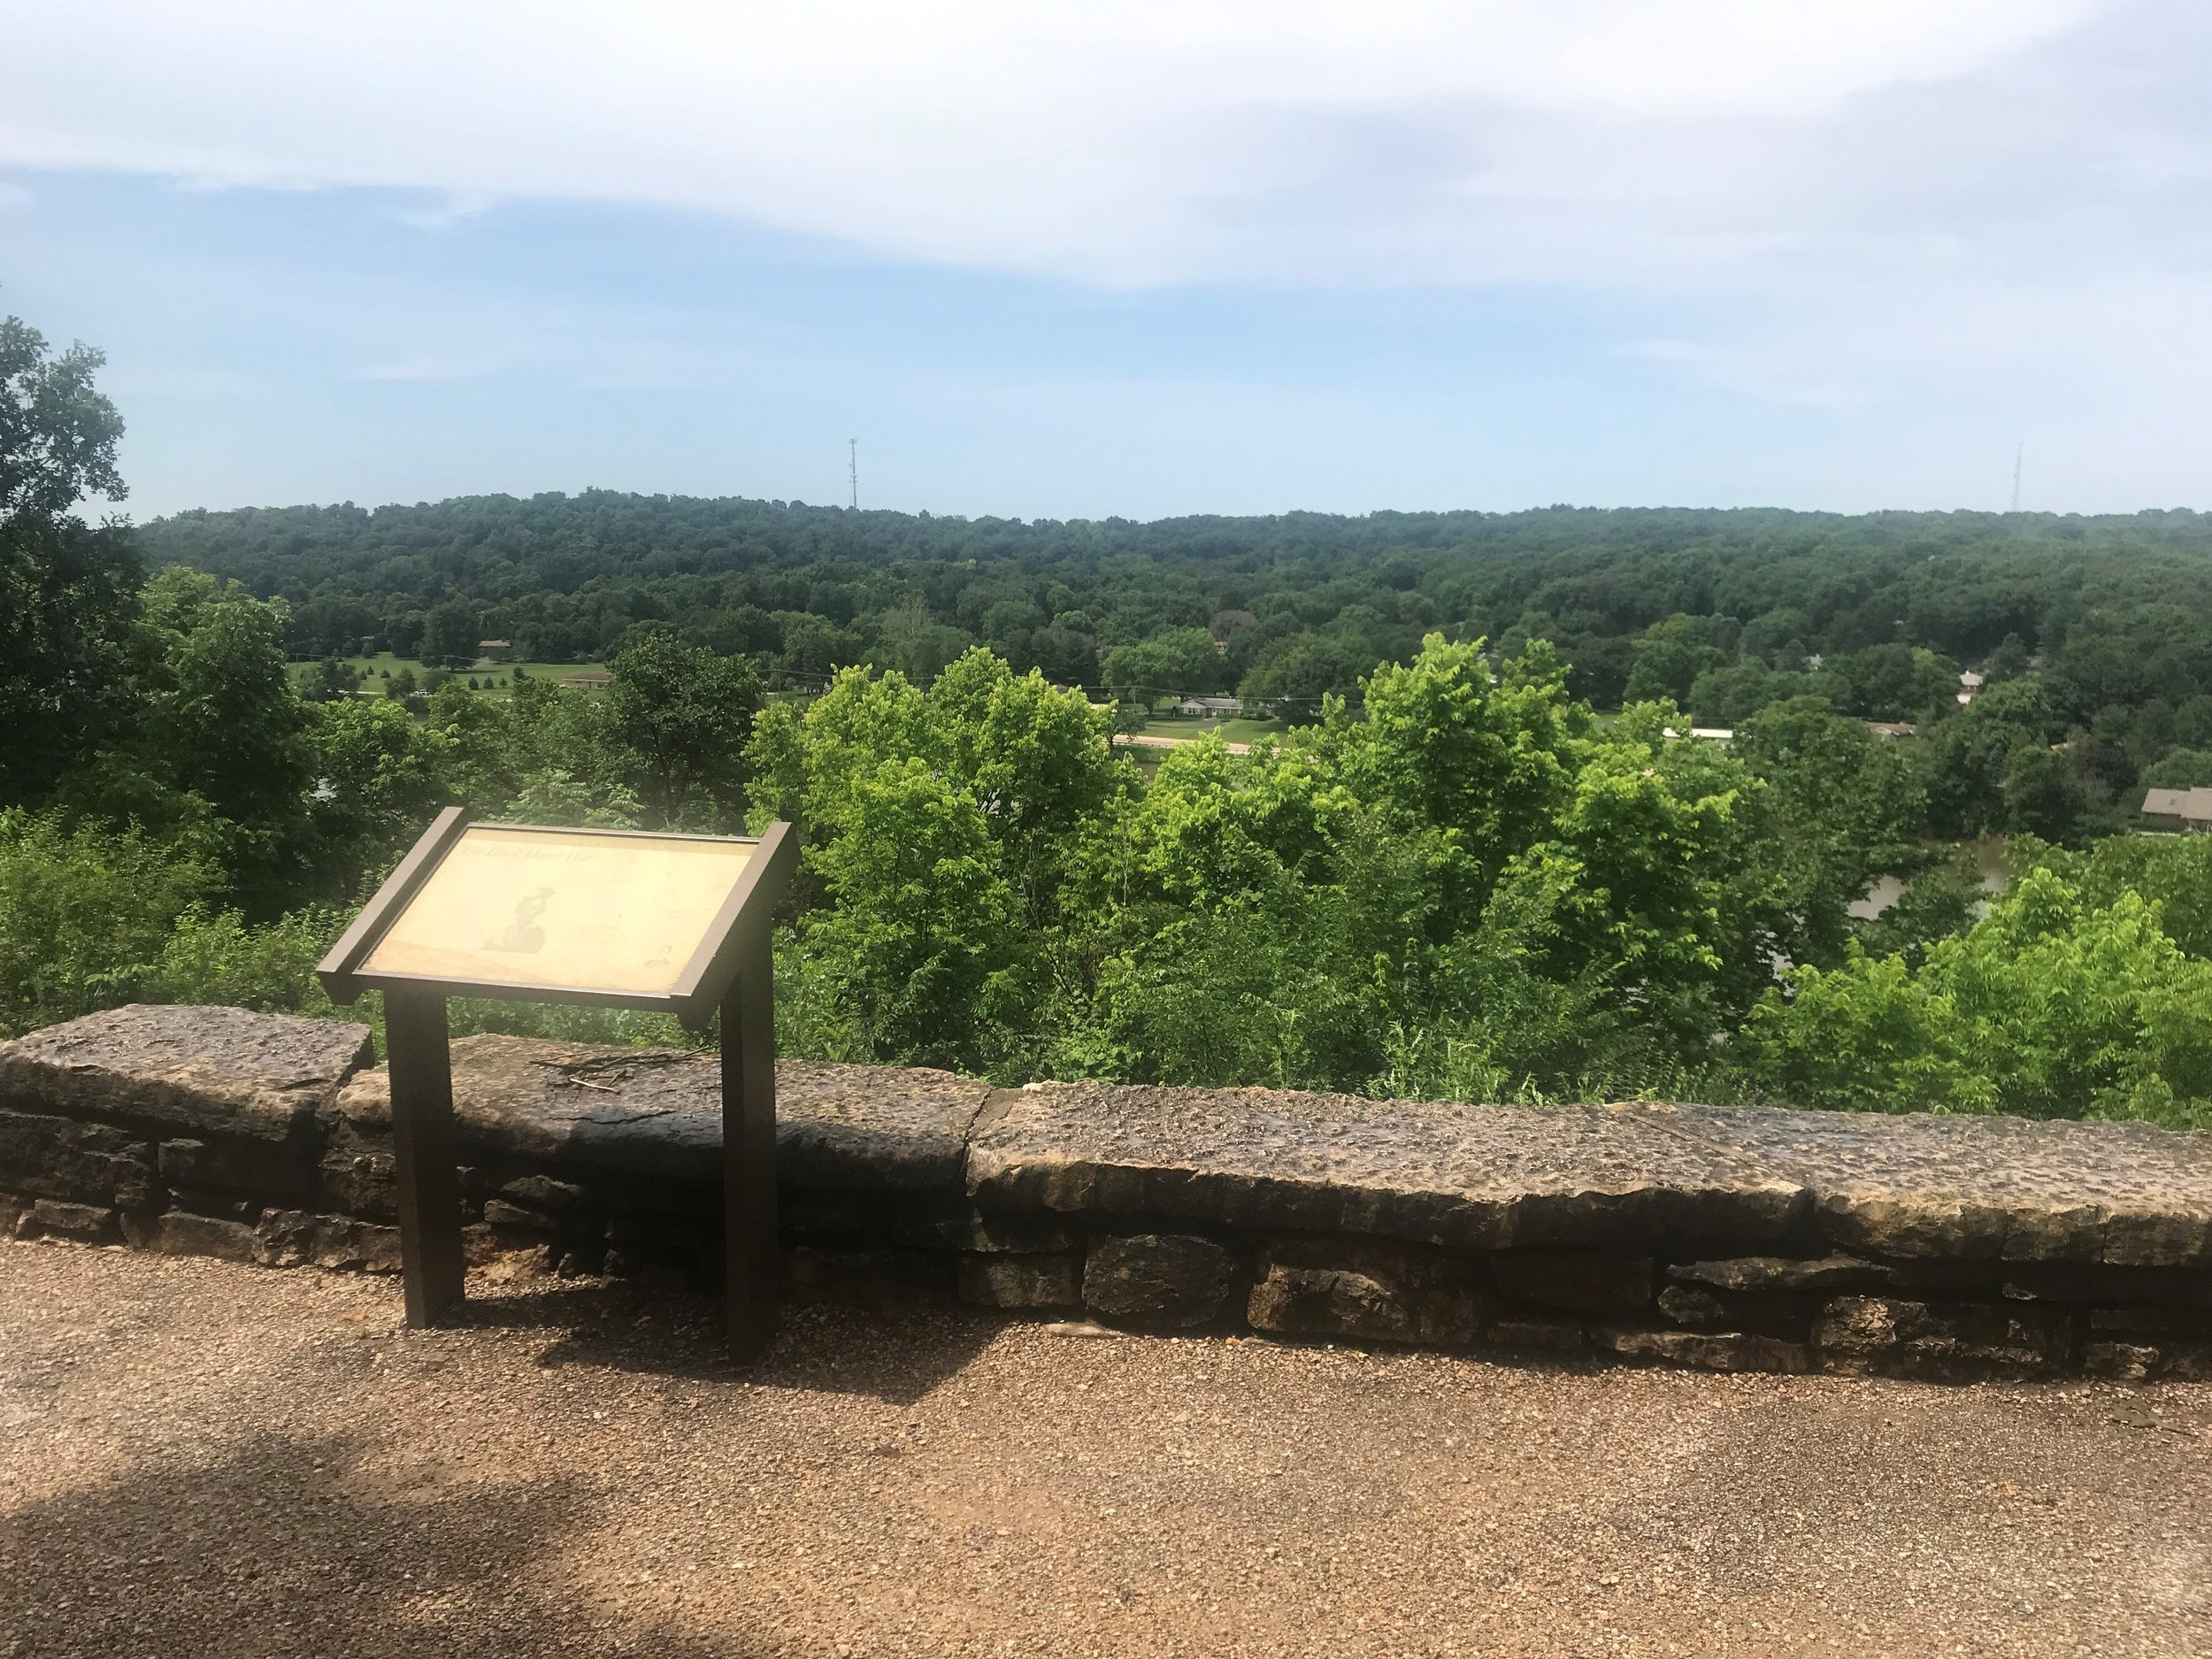 The Eternal Indian has enjoyed this incredible view of the Rock River Valley for nearly 110 years